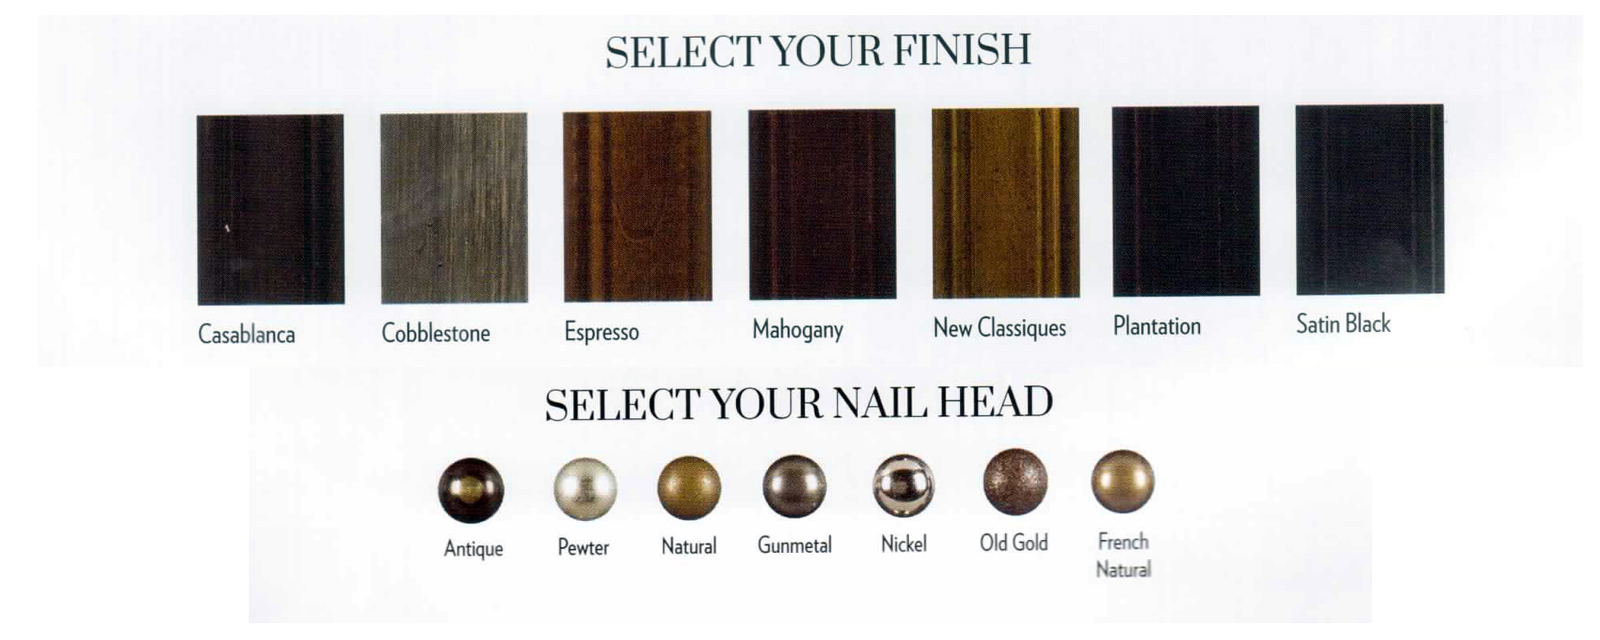 Pick your wood and nail options